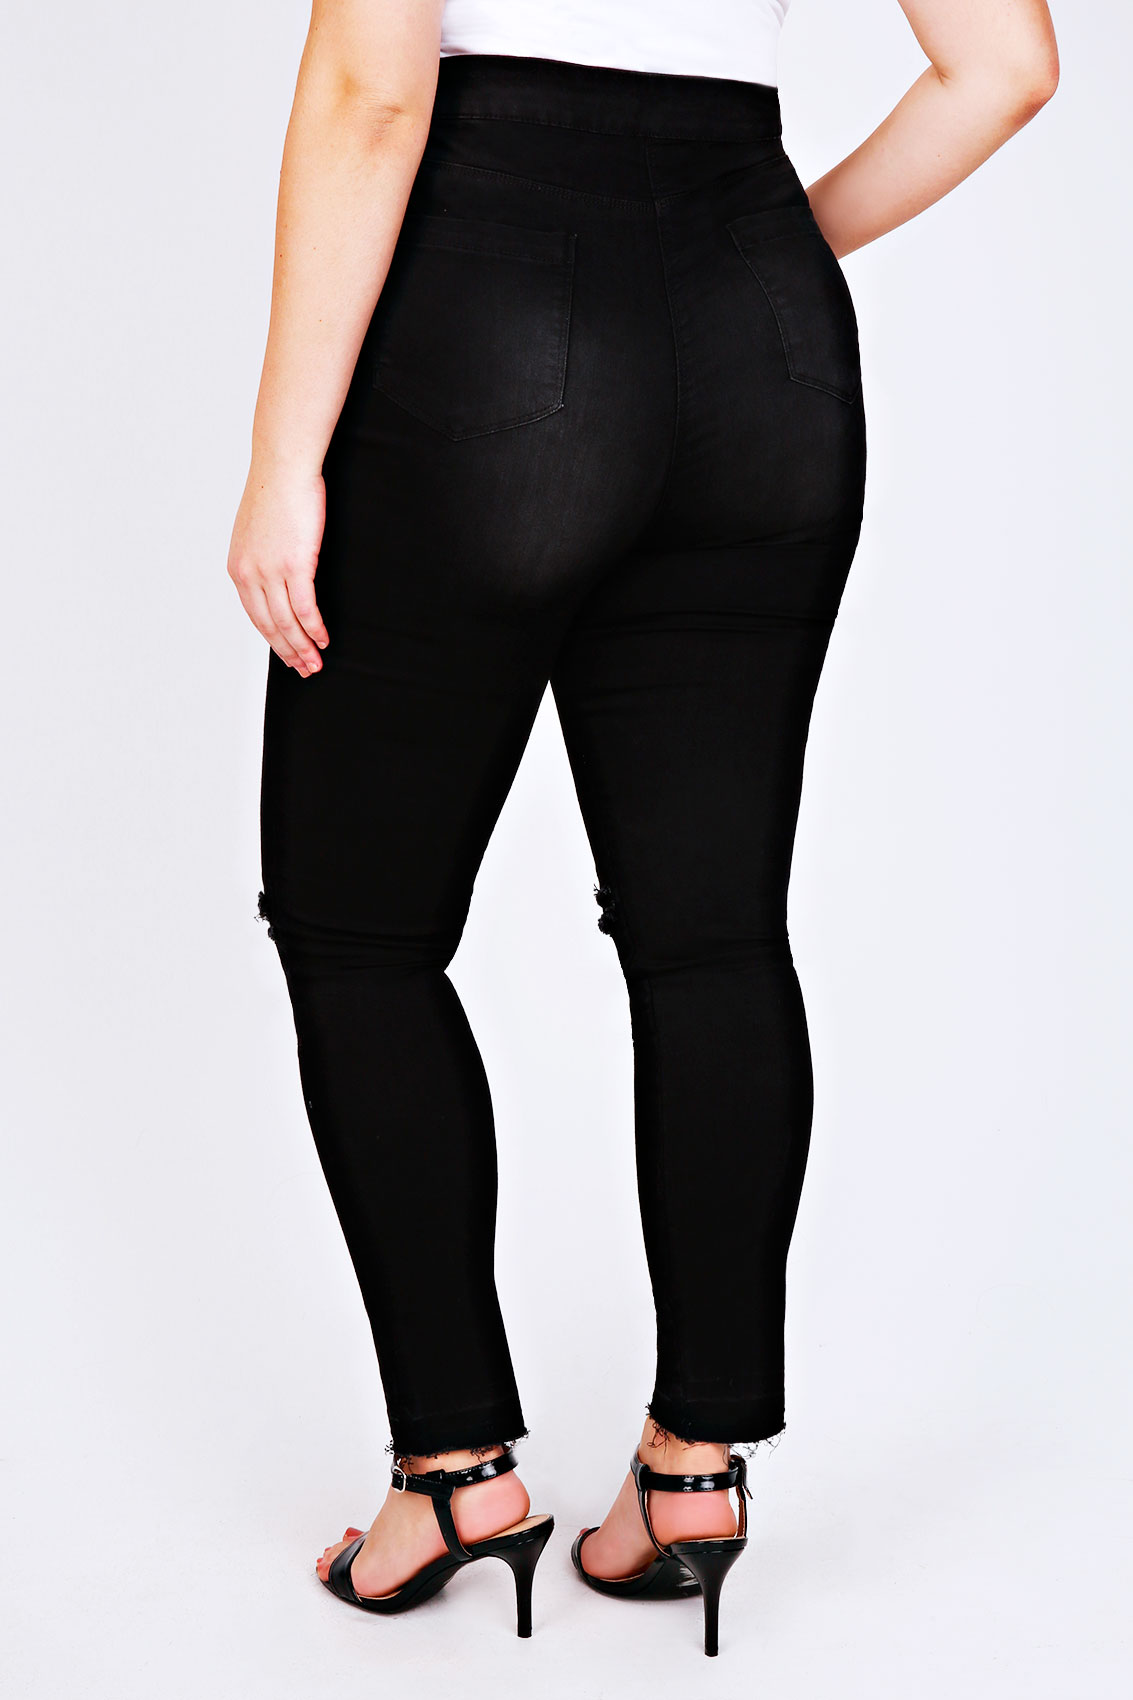 Find great deals on eBay for black high waisted ripped jeans. Shop with confidence. Skip to main content. eBay: Women's Plus Size High Waisted Ripped Knee Skinny Jeans Black. Brand New. $ Buy It Now +$ shipping. Women High Waisted Short Mini Jeans Ripped Jeans Shorts Mini Shorts Sexy Ladies. Brand New · Unbranded. $